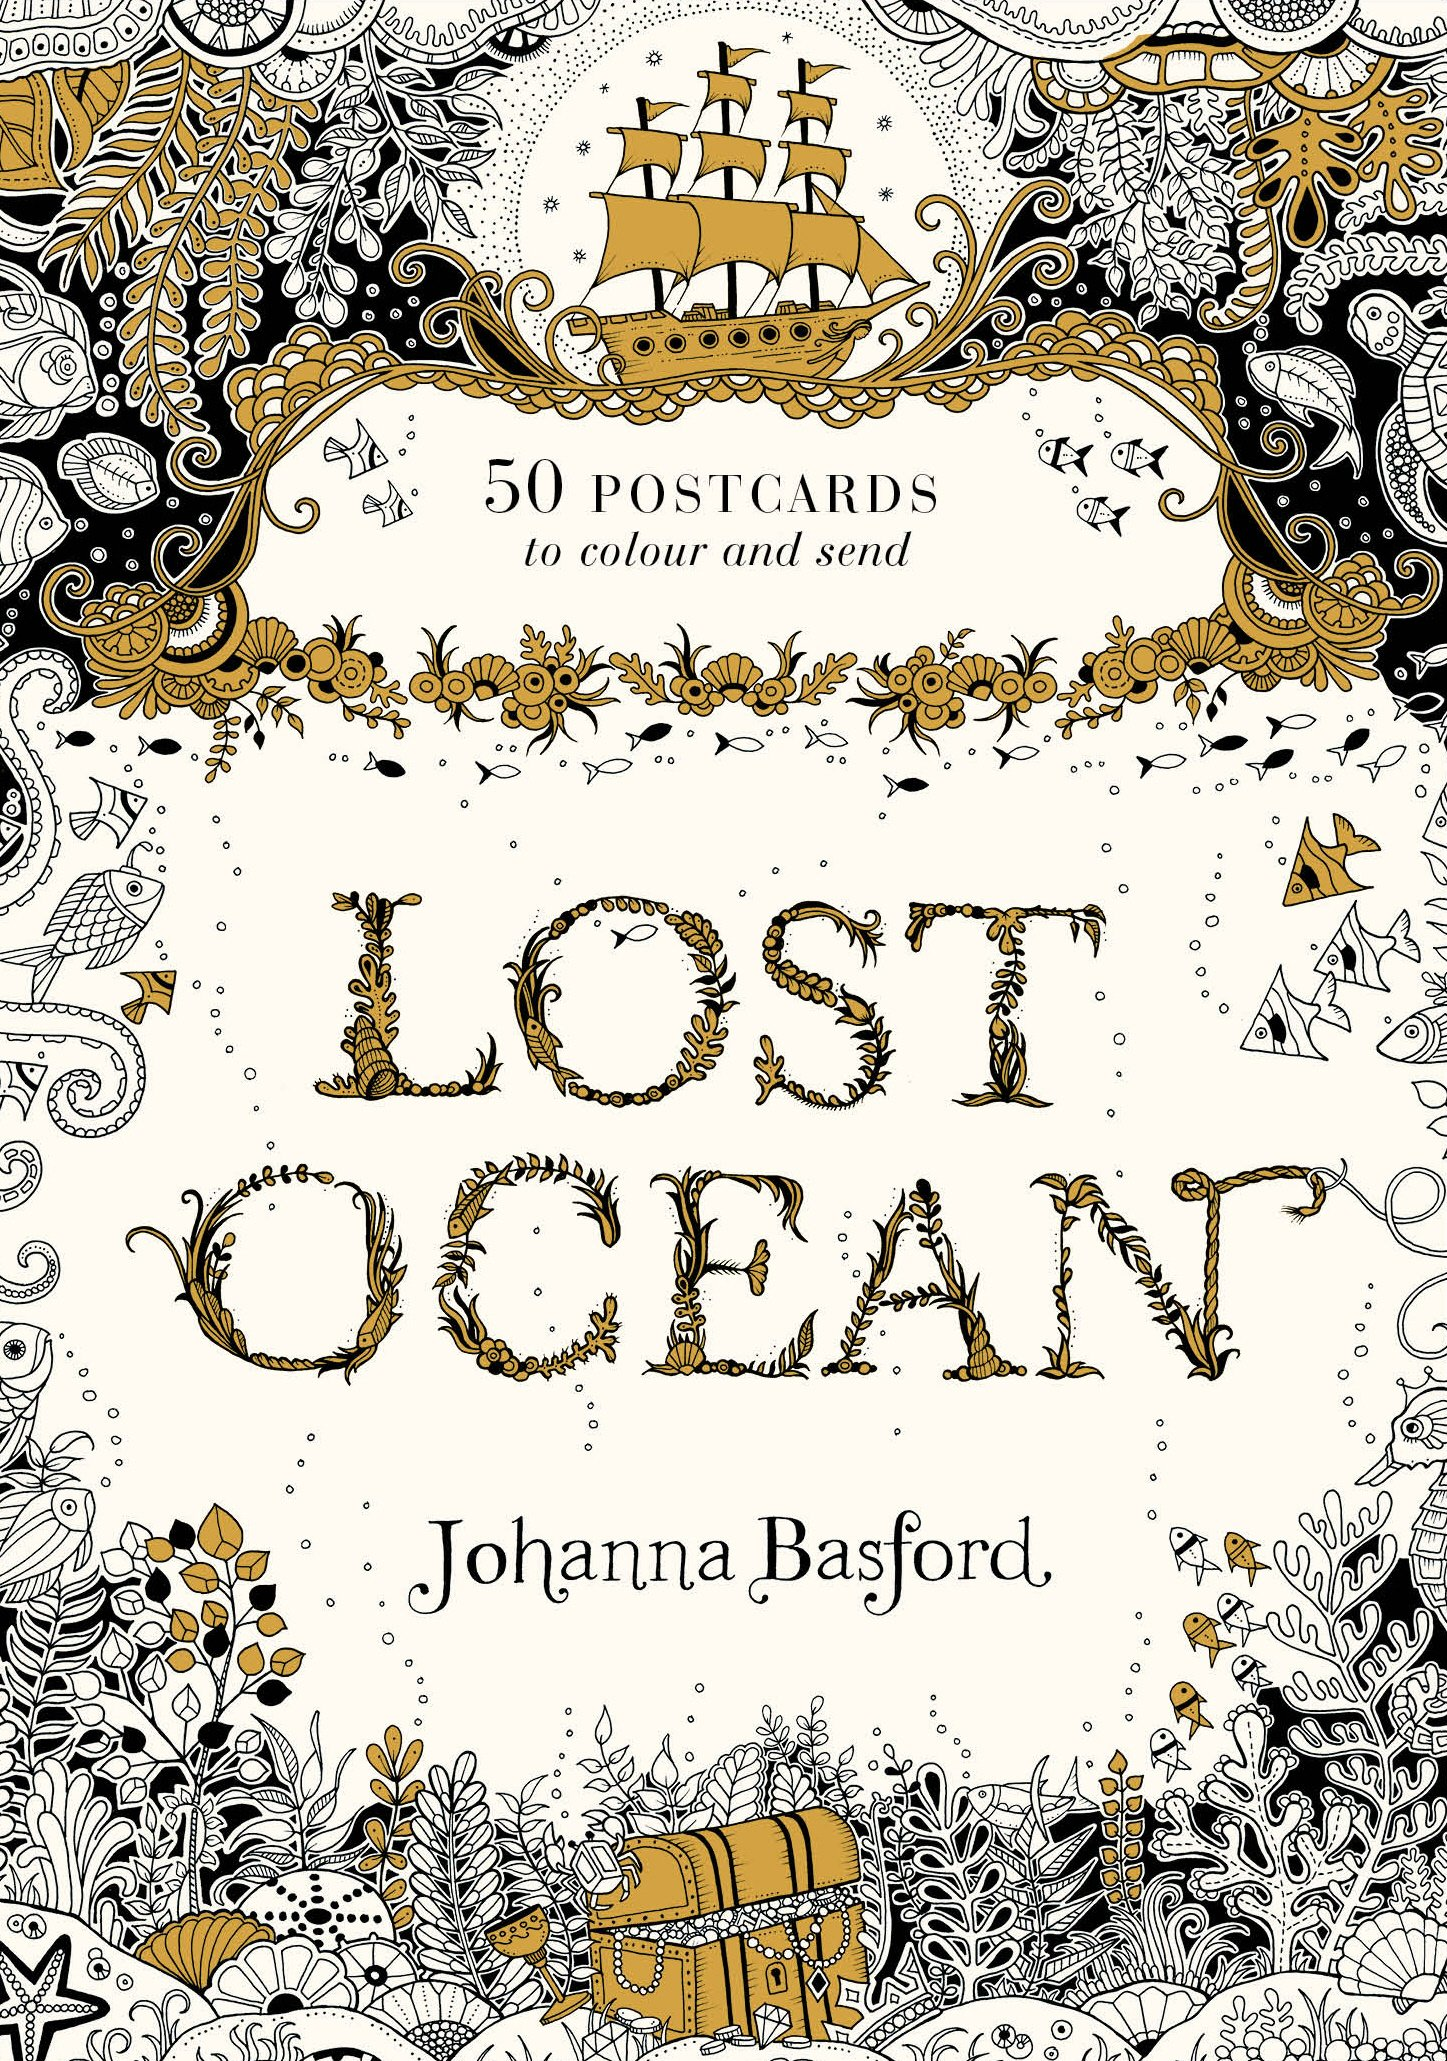 Lost Ocean Postcard Edition: 50 Postcards to Colour and Send middle eastern patterns to colour